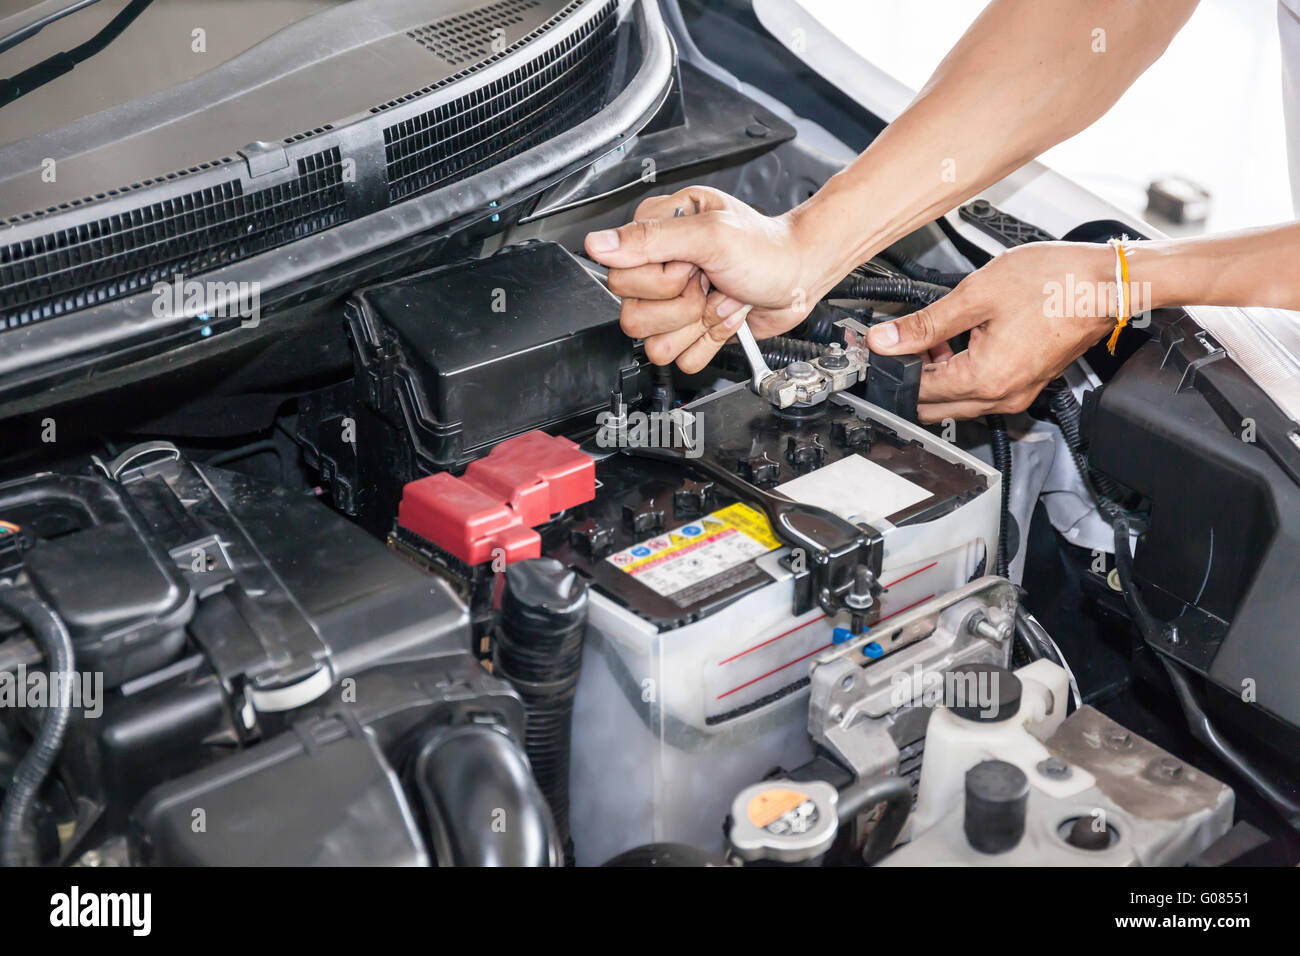 Where is the battery in a car - Mechanic Engineer Fixing Car Battery In Garage Selective Focus